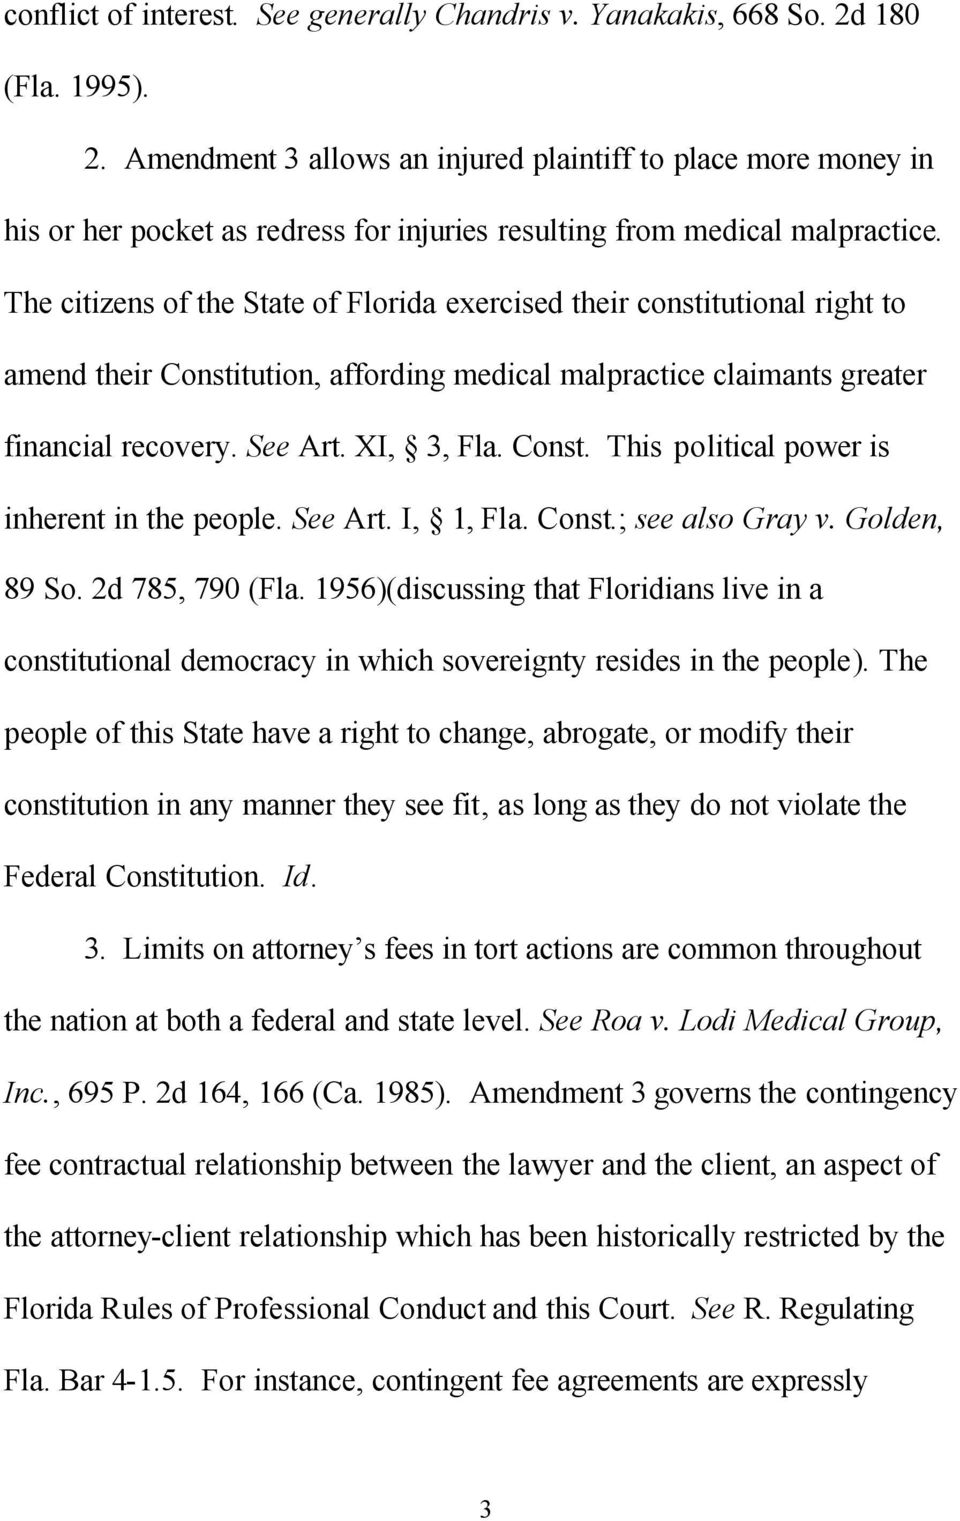 The citizens of the State of Florida exercised their constitutional right to amend their Constitution, affording medical malpractice claimants greater financial recovery. See Art. XI, 3, Fla. Const. This political power is inherent in the people.